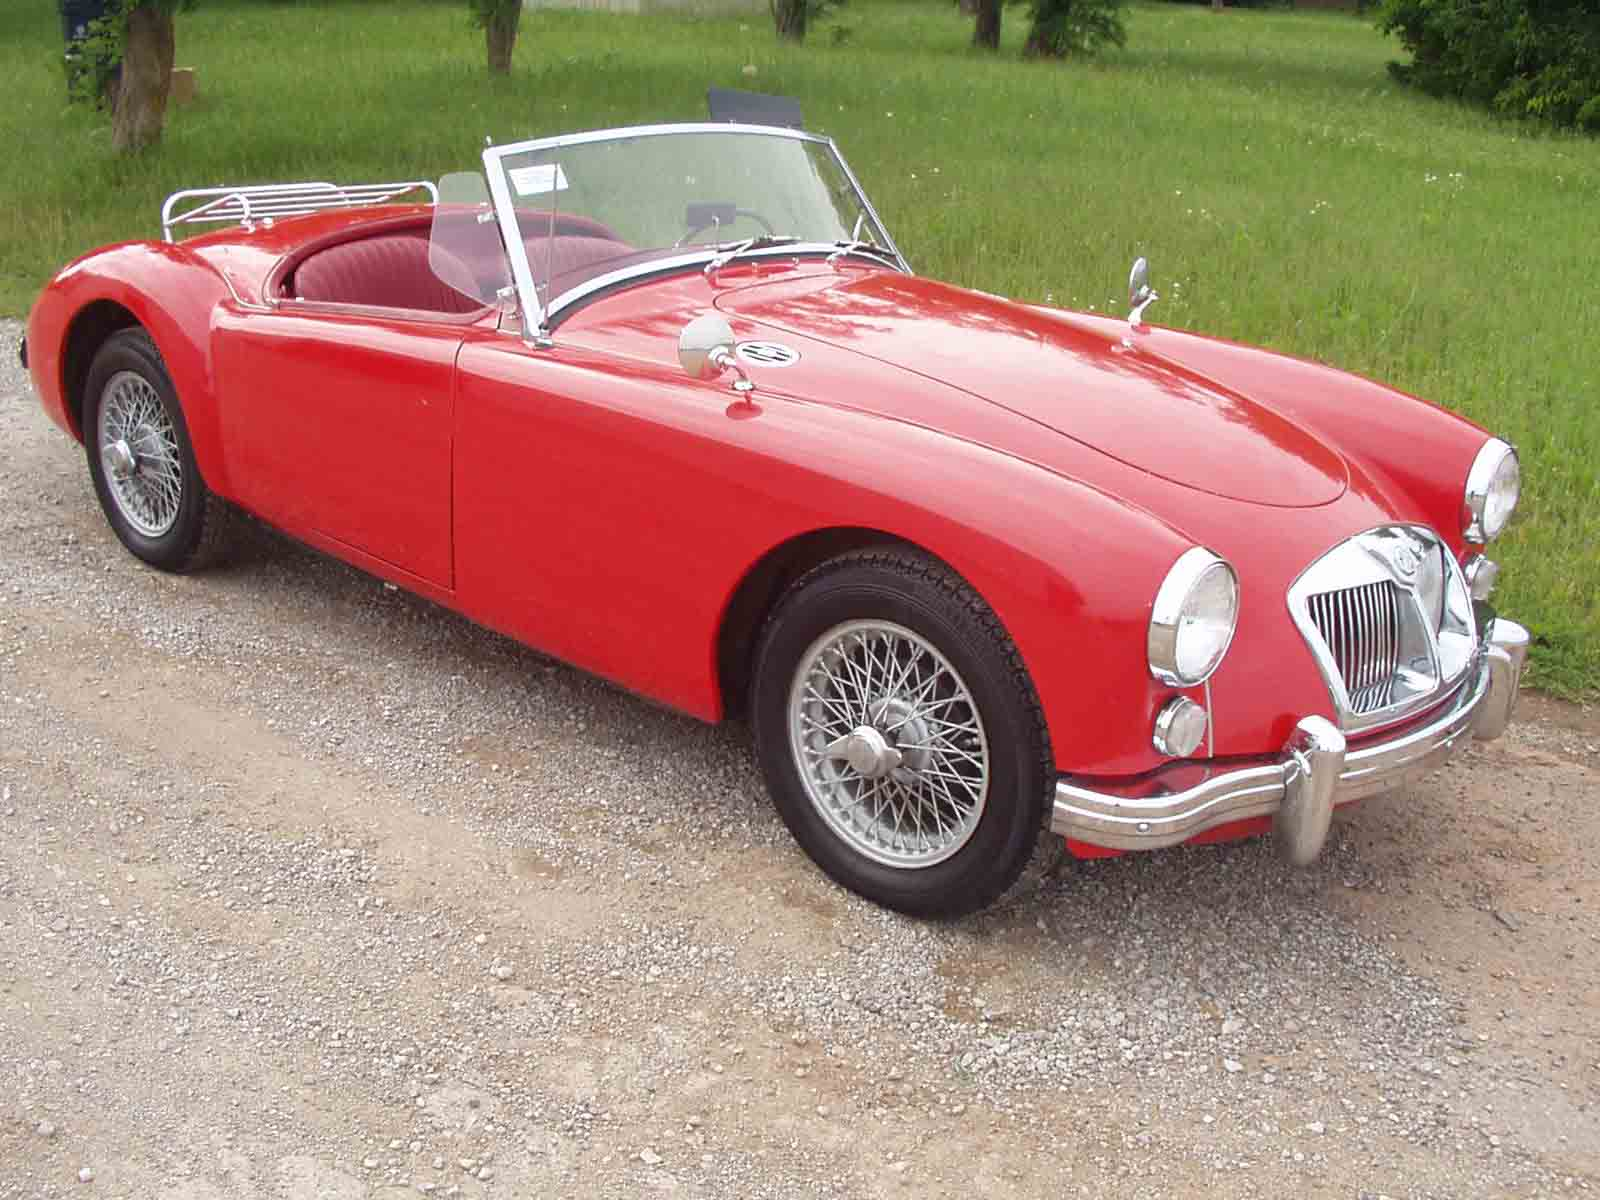 MG Car Parts for sale. Parts for the MG cars from the earliest MG T ...